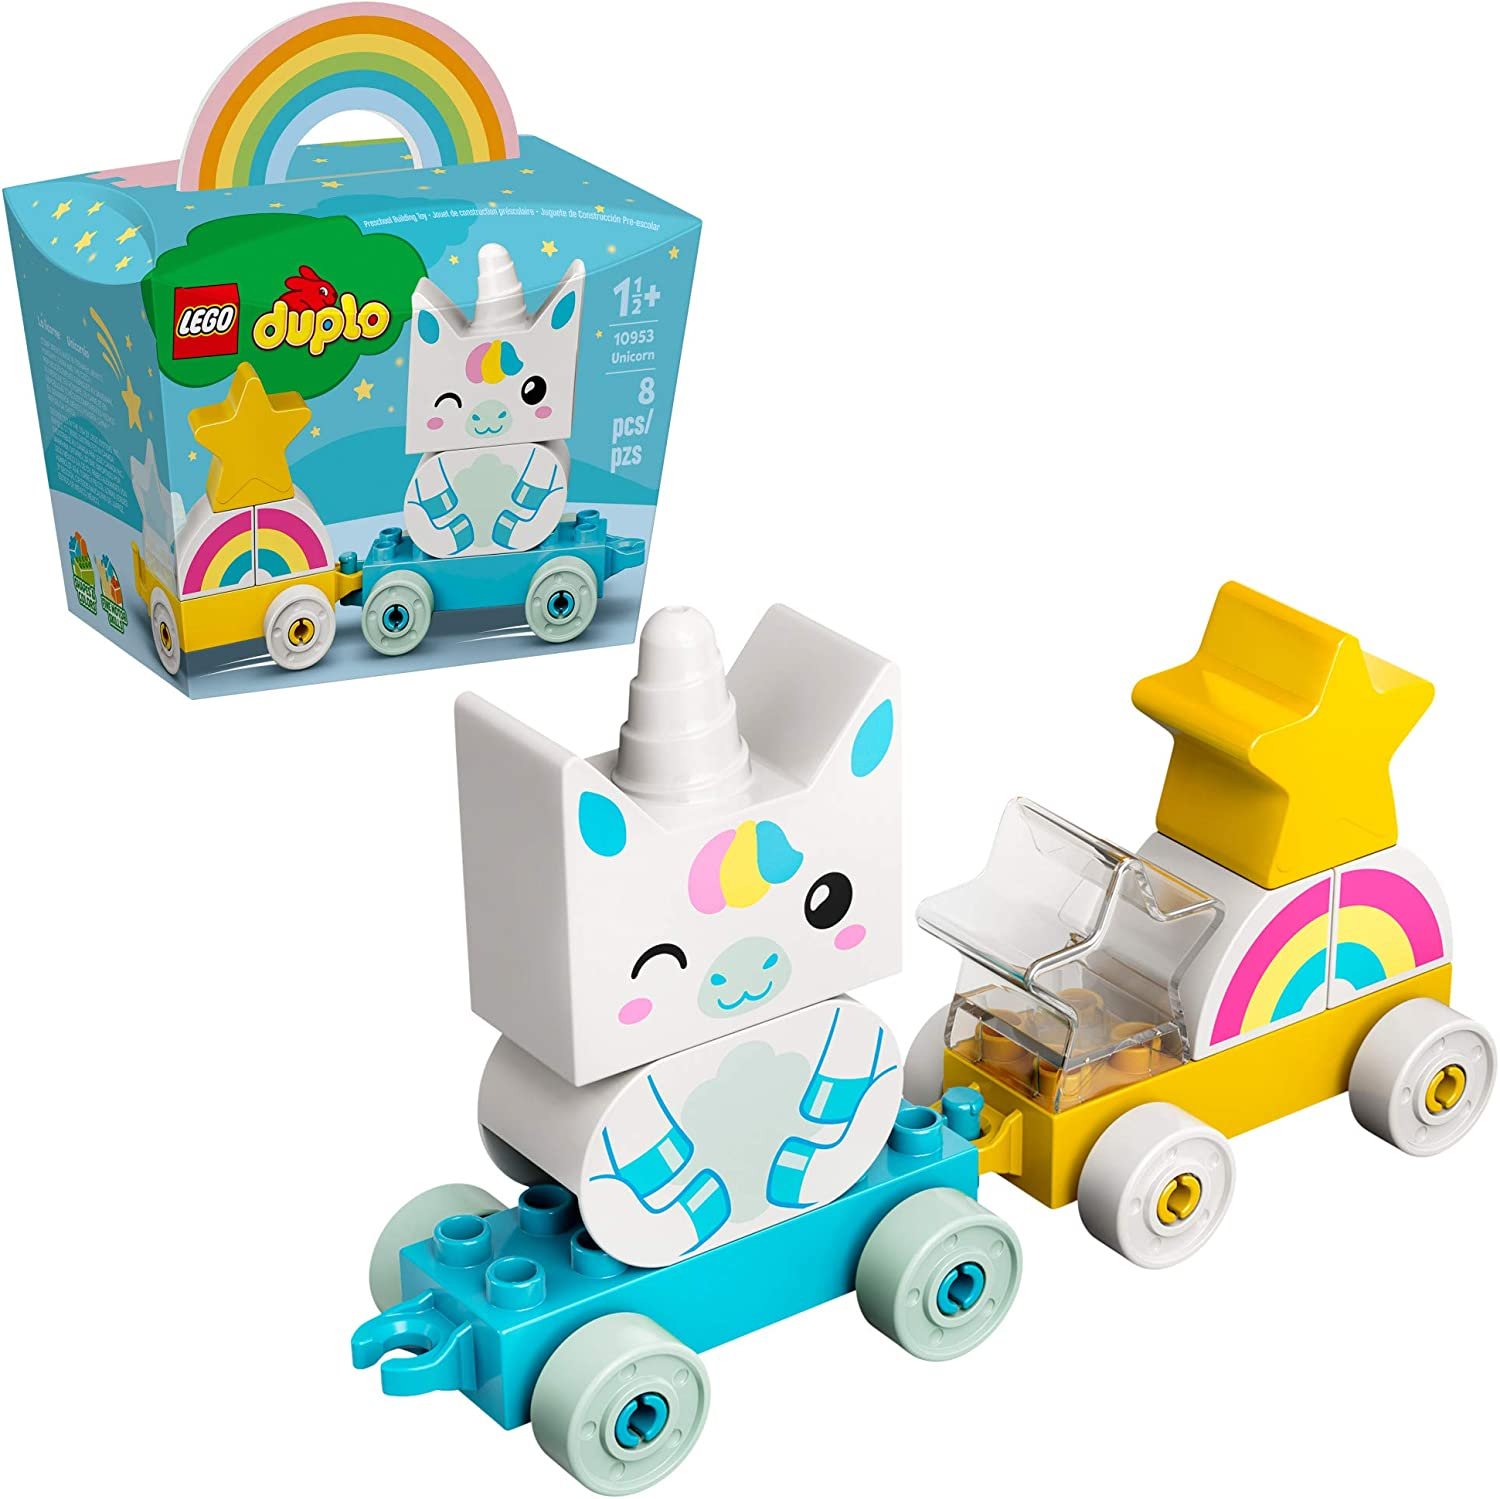 LEGO DUPLO My First Unicorn 10953 Pull-Along Unicorn for Young Kids; Great Toy for Imaginative Learning Through Play, New 2021 (8 Pieces)